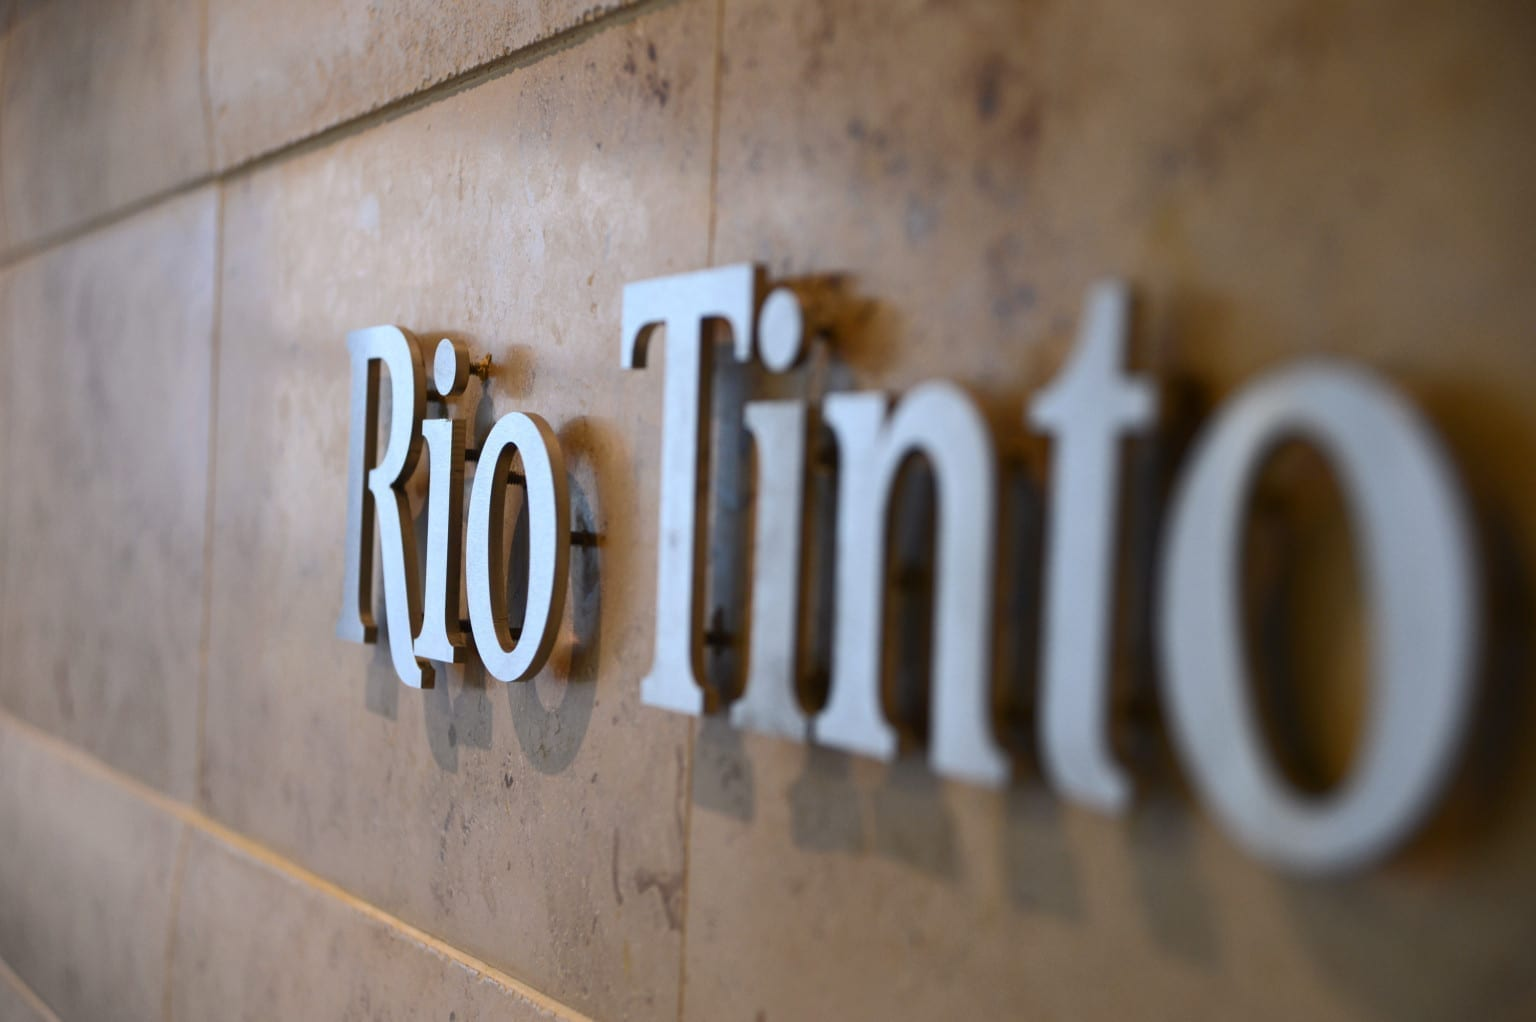 Rio Tinto approves $463 million investment in Zulti South